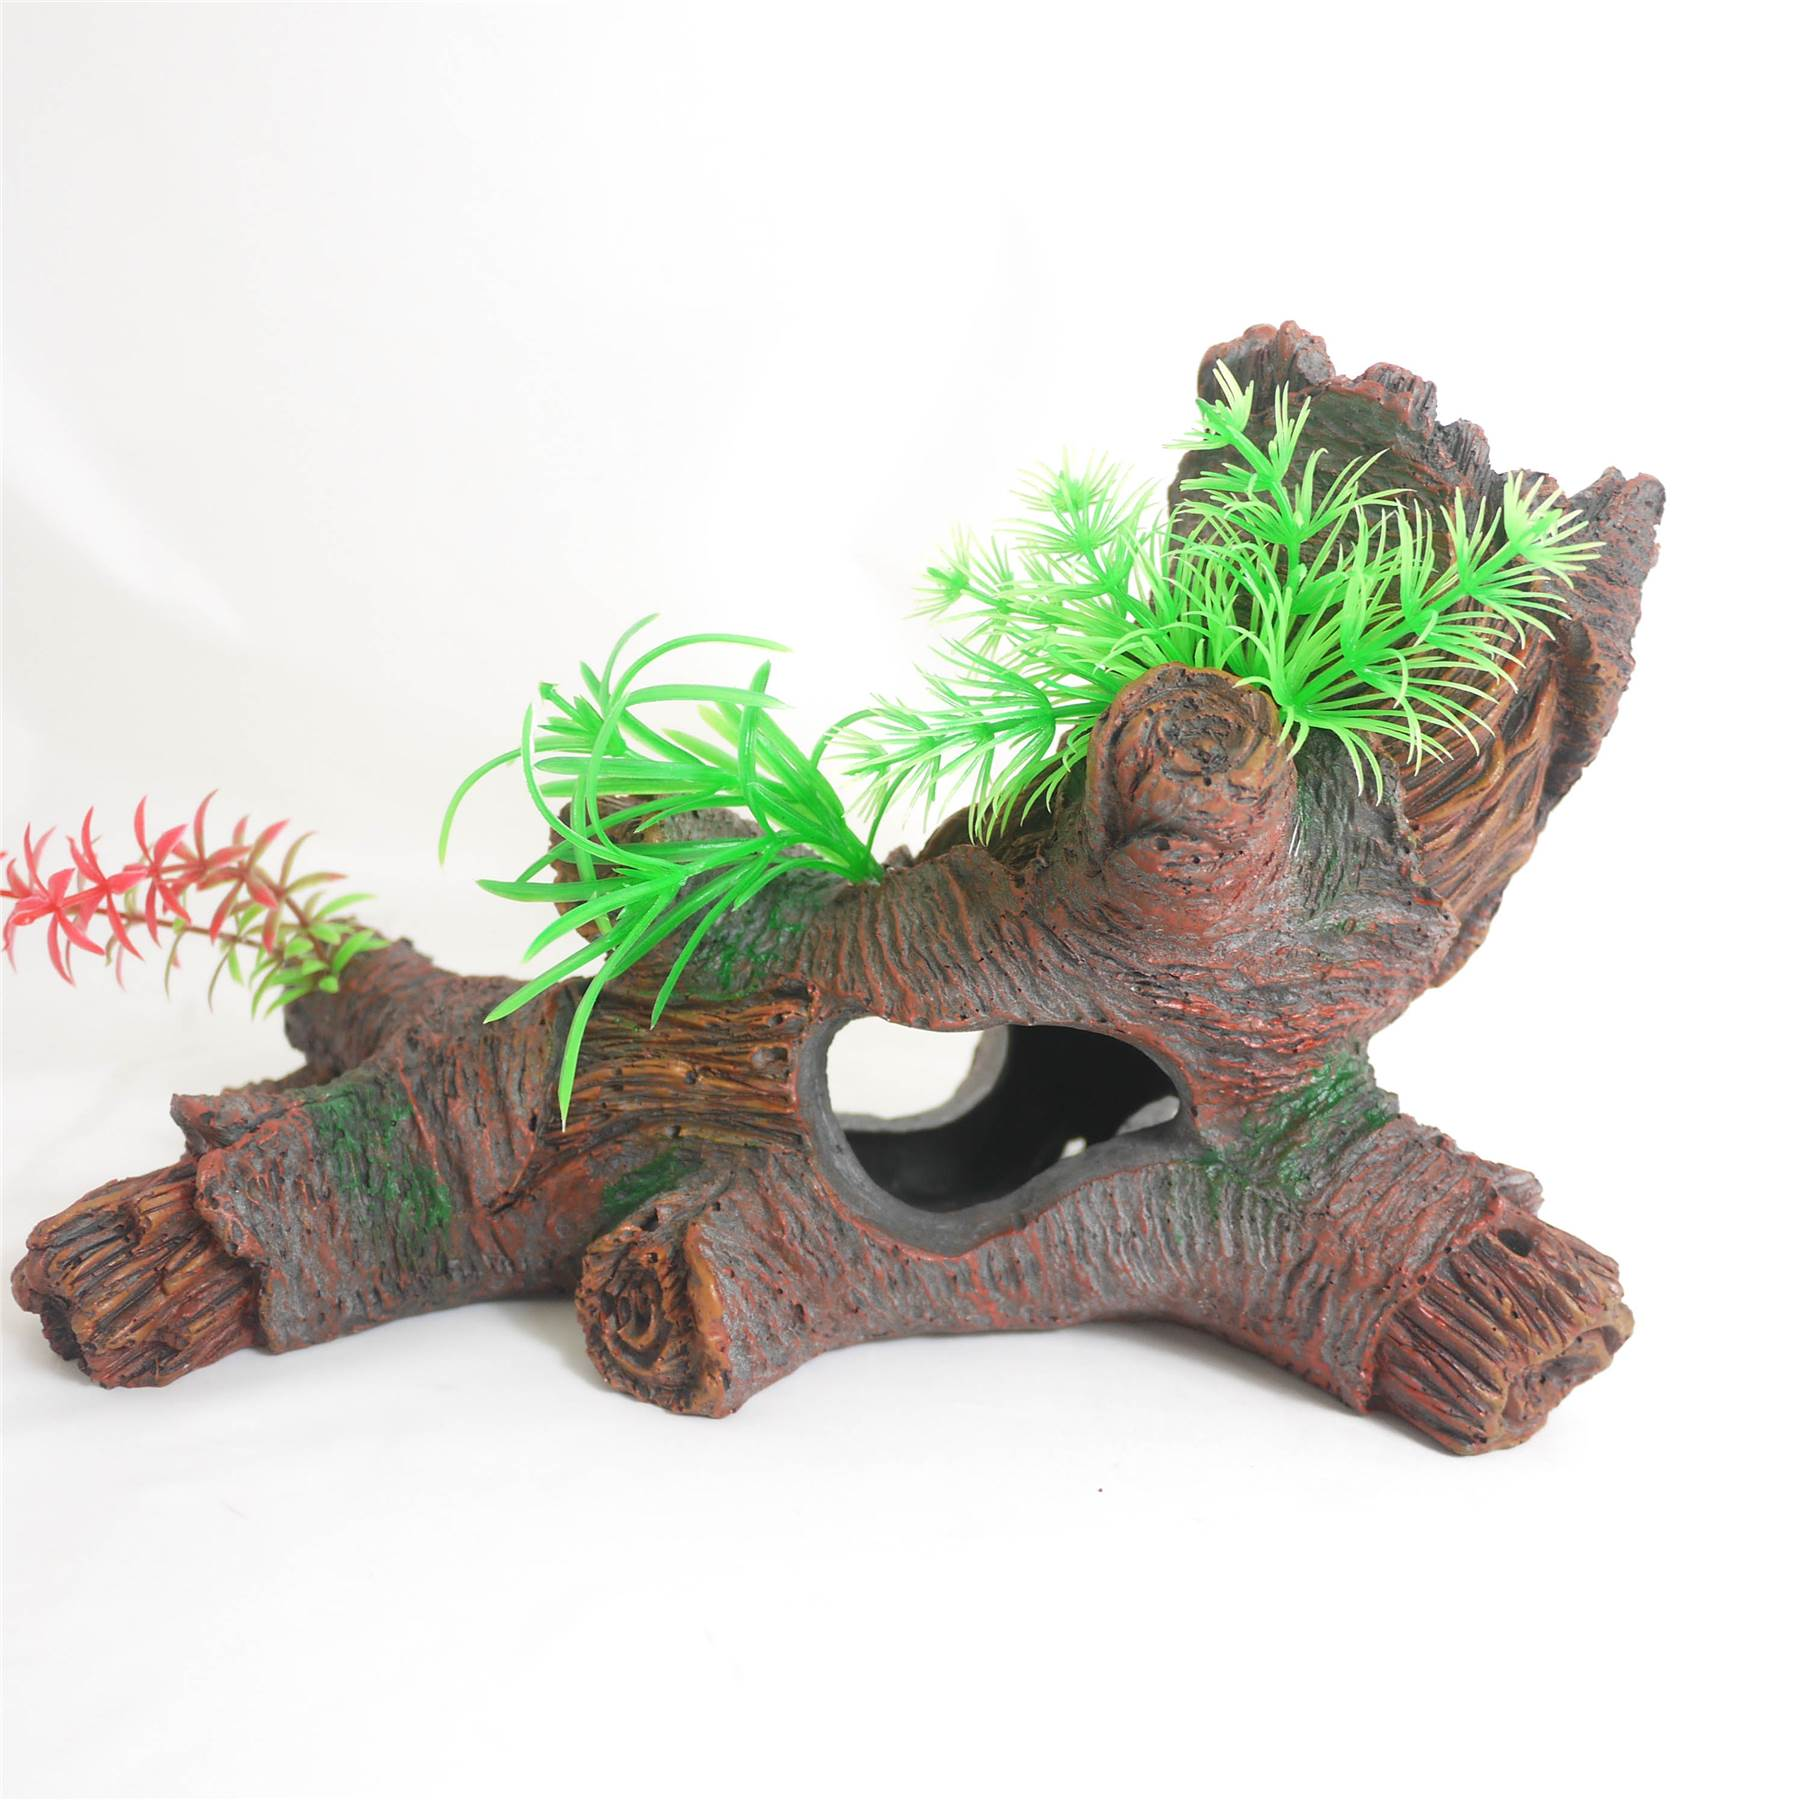 Aquarium resin bogwood drift wood log ornament fish tank for Aquarium decoration paint